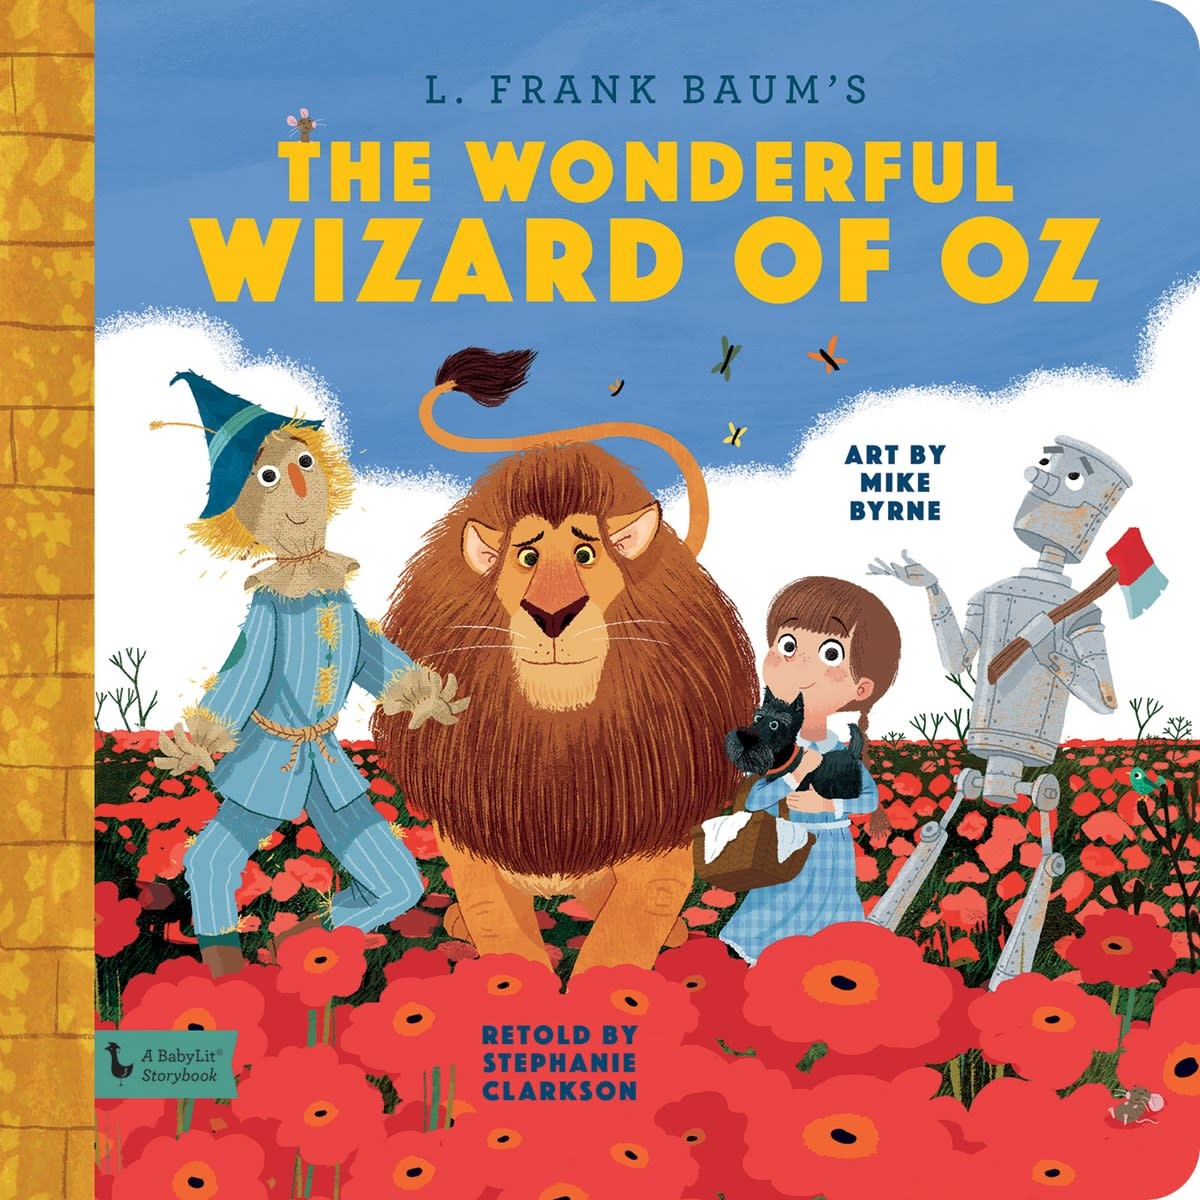 Gibbs Smith A Babylit Storybook: The Wonderful Wizard of Oz